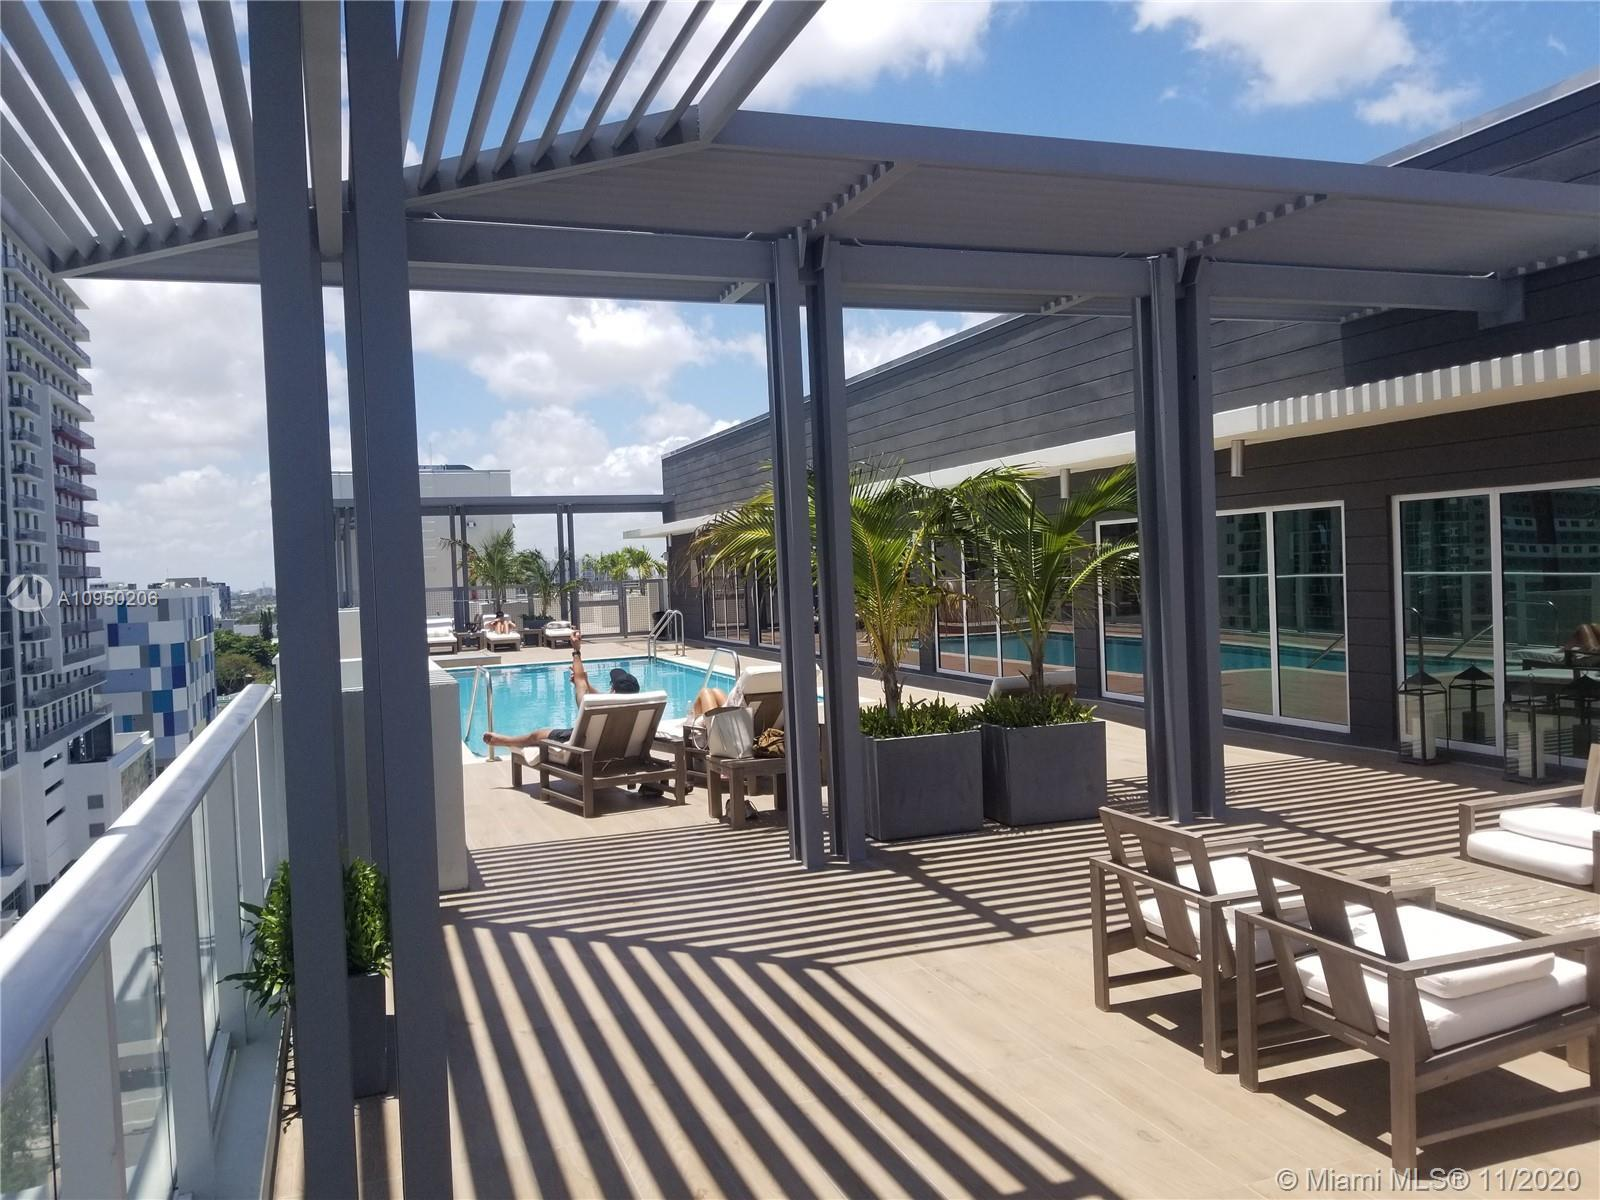 LOCATION, LOCATION, LOCATION!!! MODERN STYLE IN THE HEART OF MIAMI, Unit 2 Bedroom 2 Bathroom in 26